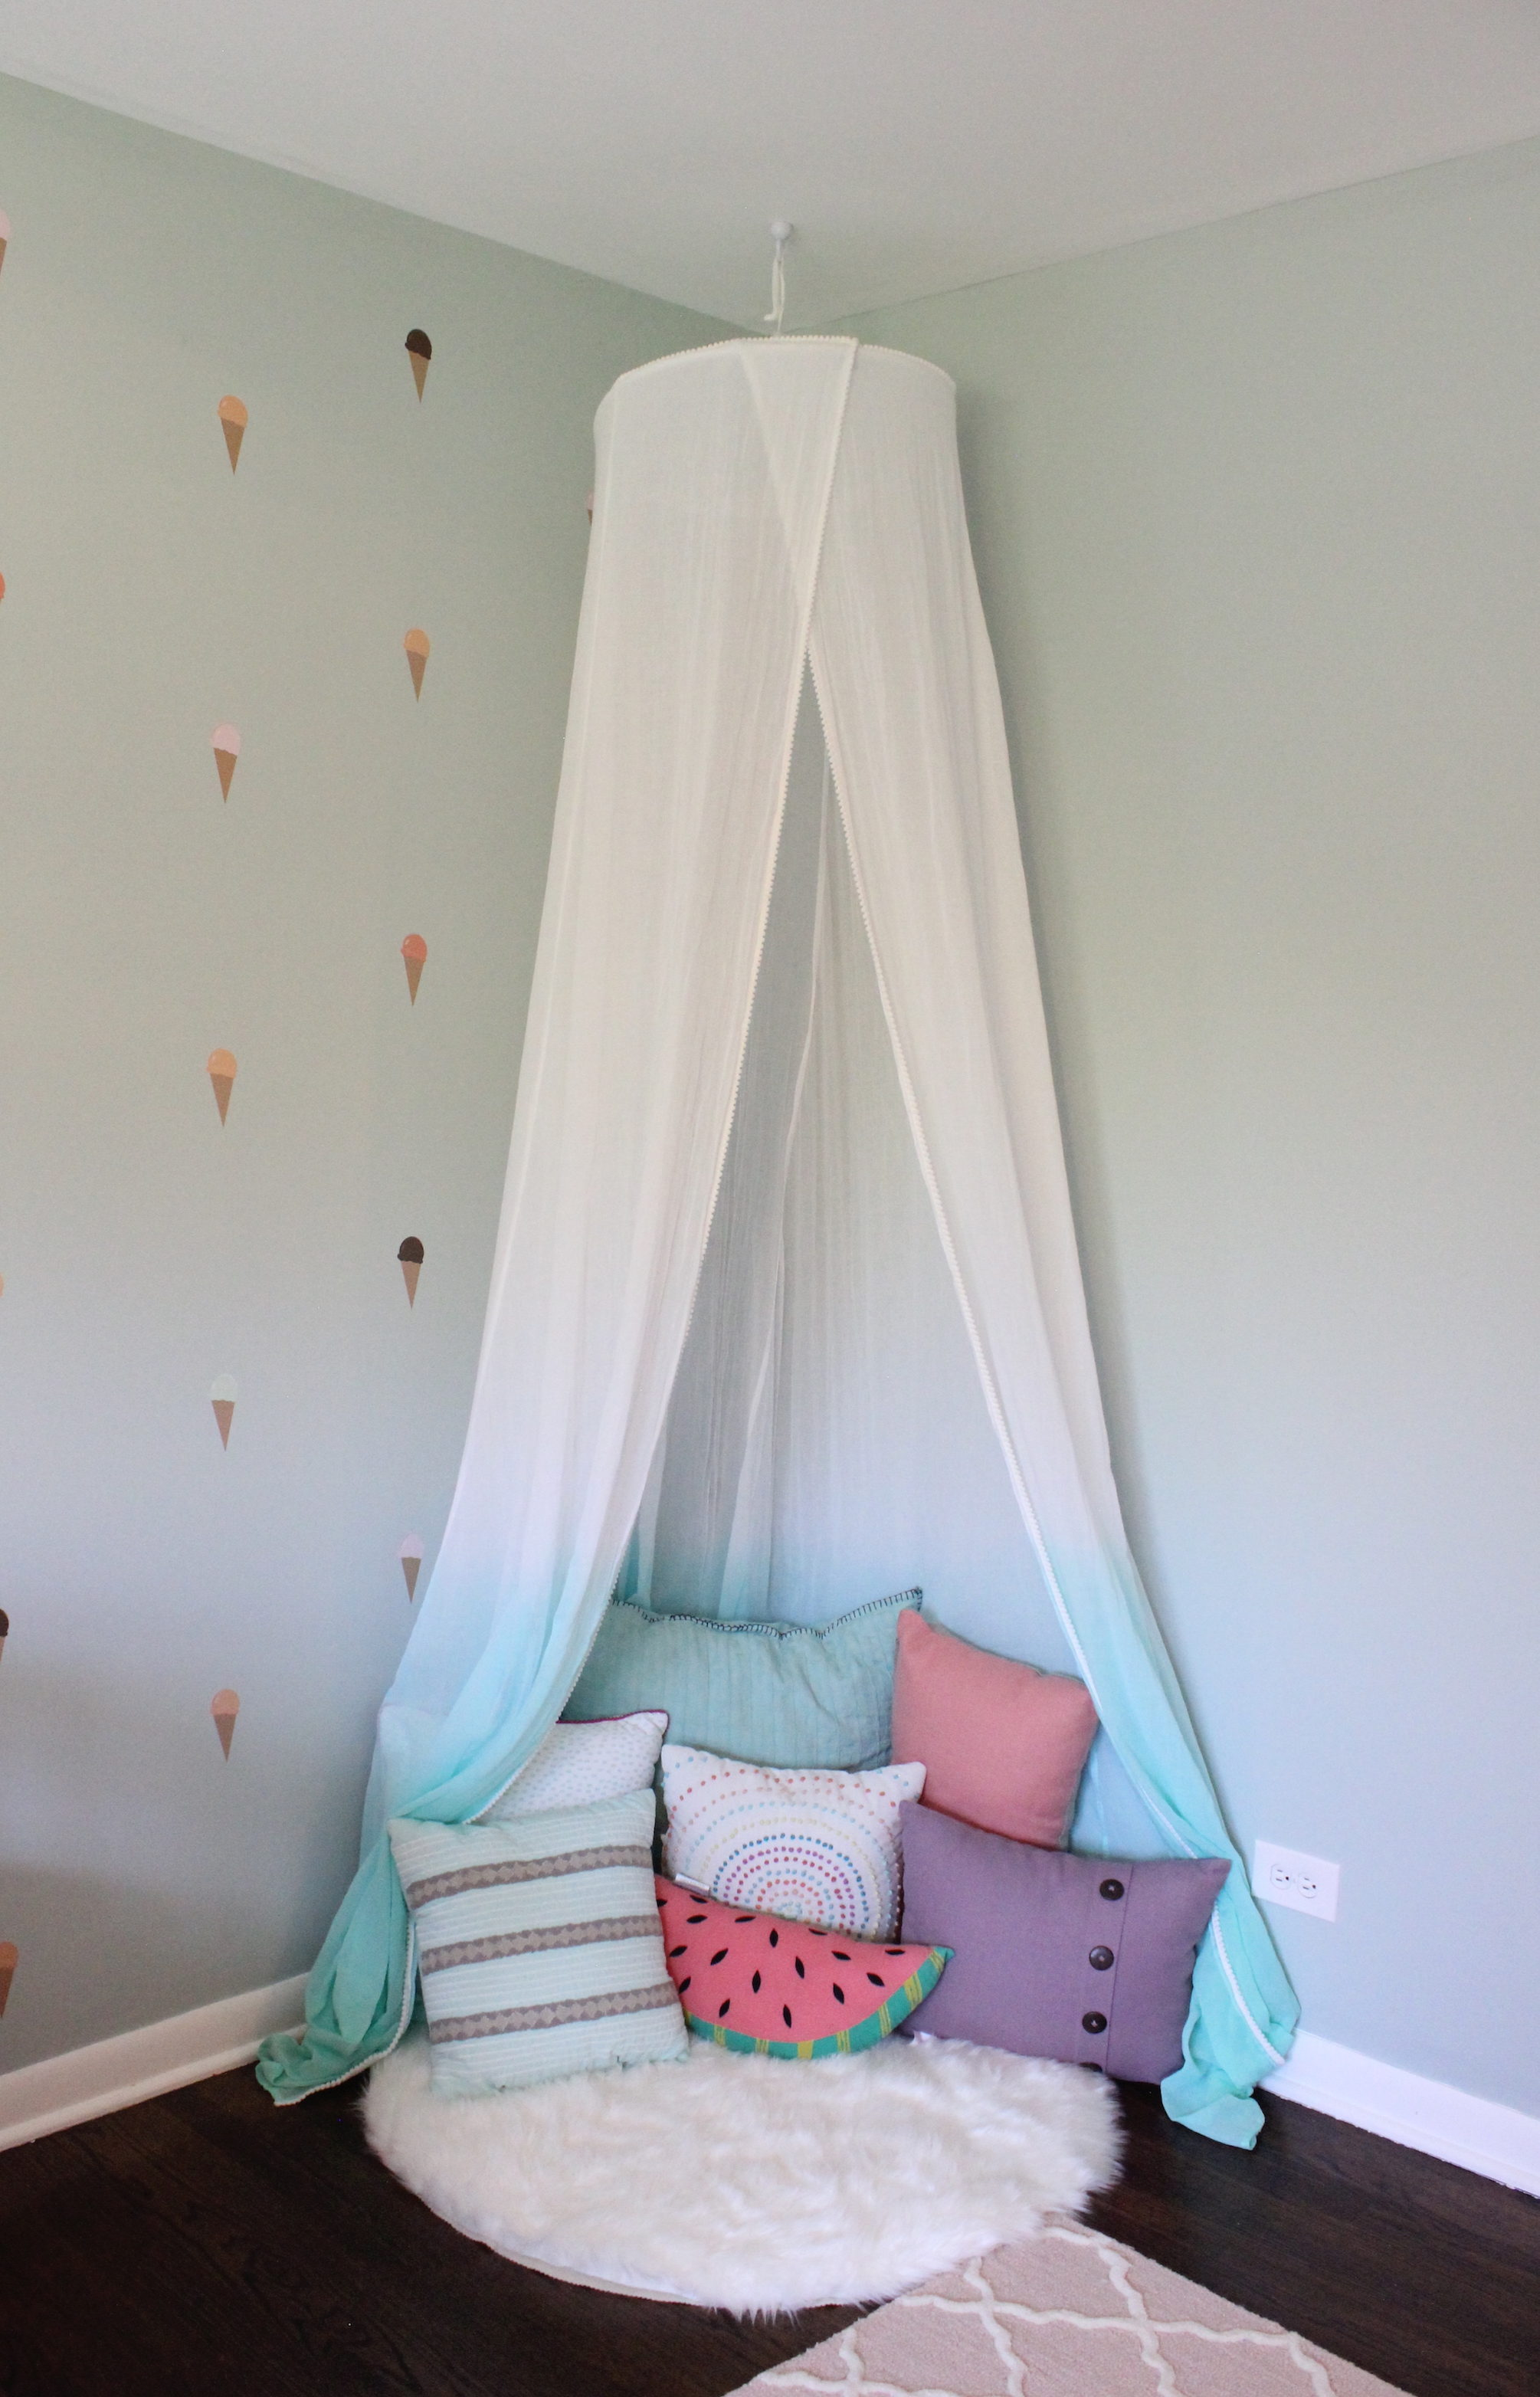 ... under the canopy from Etsy and then filled it with pillows. The watermelon pillow is from Land of Nod and the others are from Target and World Market. & Kateu0027s Big Girl Room | 12 Oaks